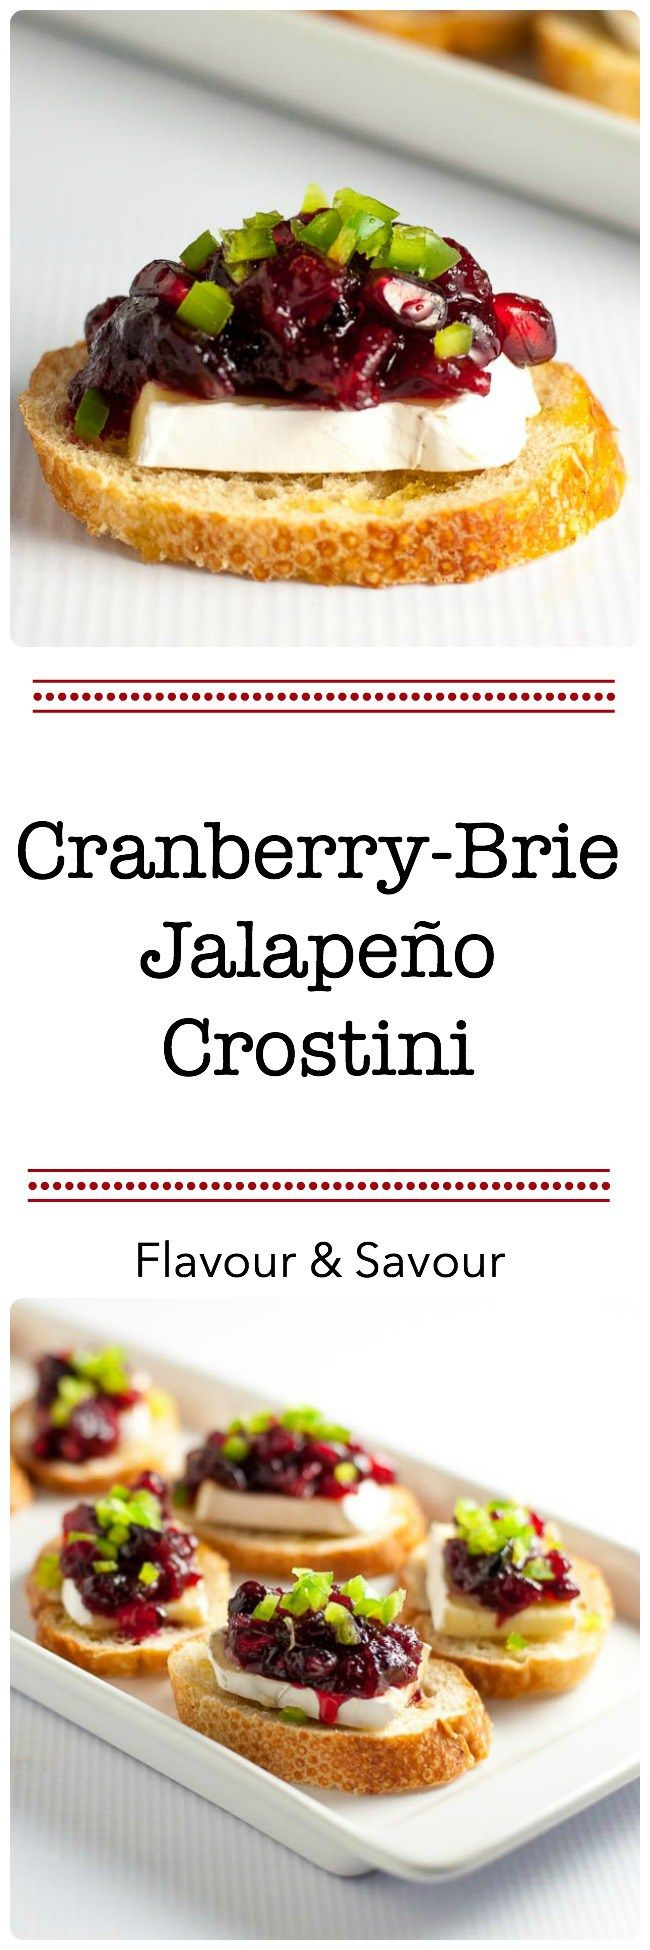 These Cranberry Jalapeño Brie Crostini Appetizers add a festive touch to your party and they're a great way to use leftover cranberry sauce!  www.flavourandsavour.com